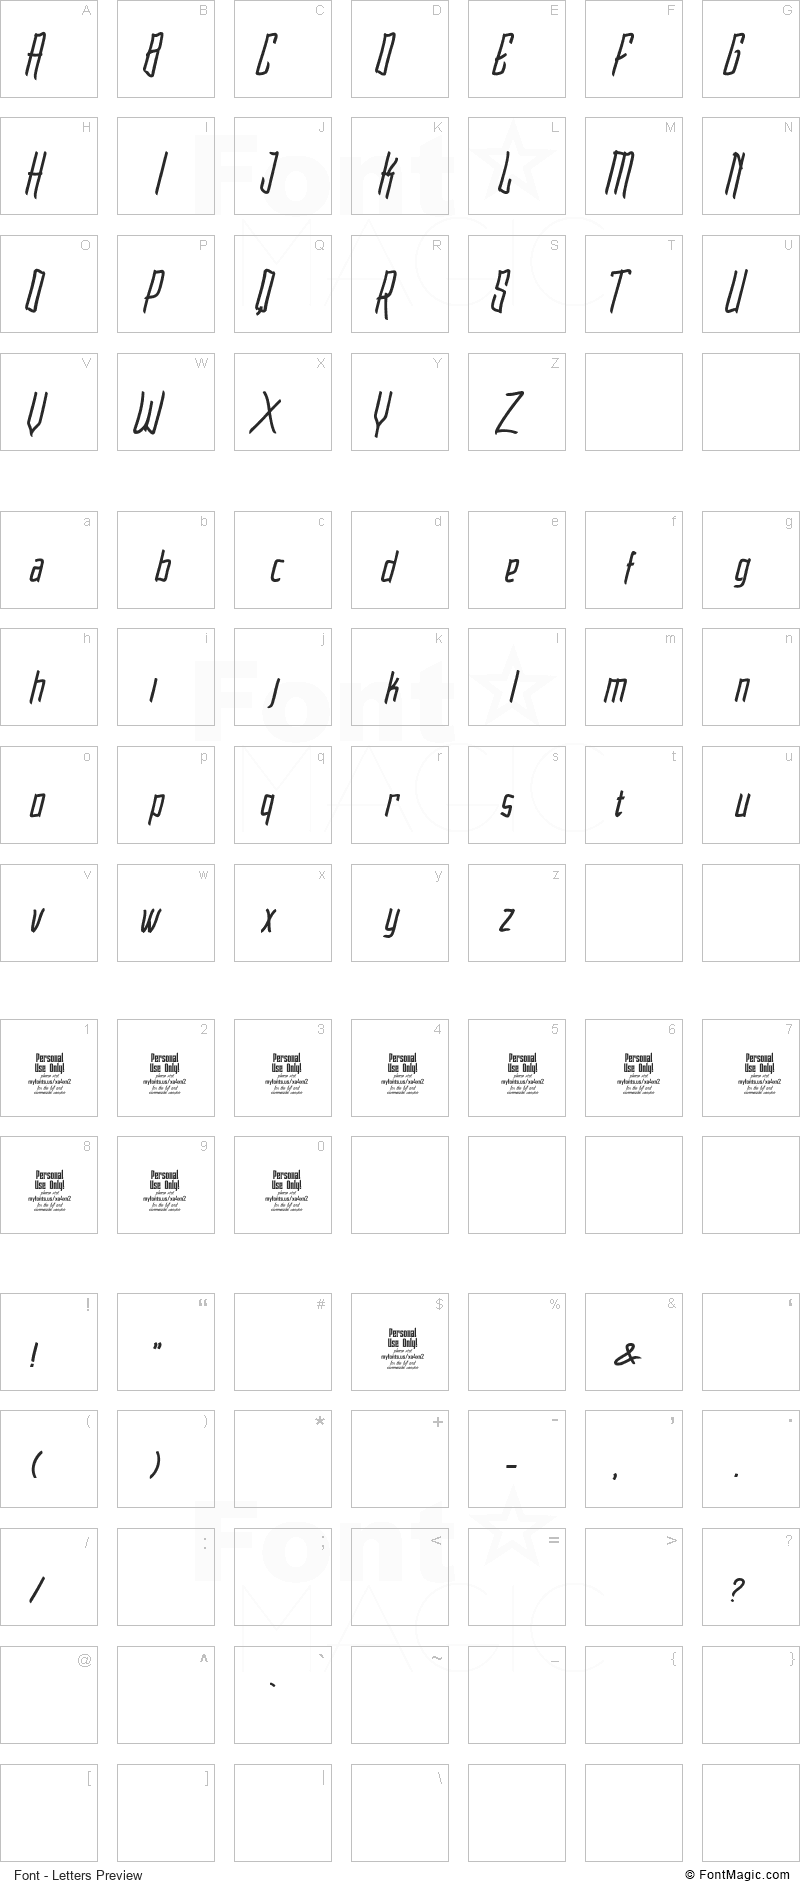 Raimoo Font - All Latters Preview Chart